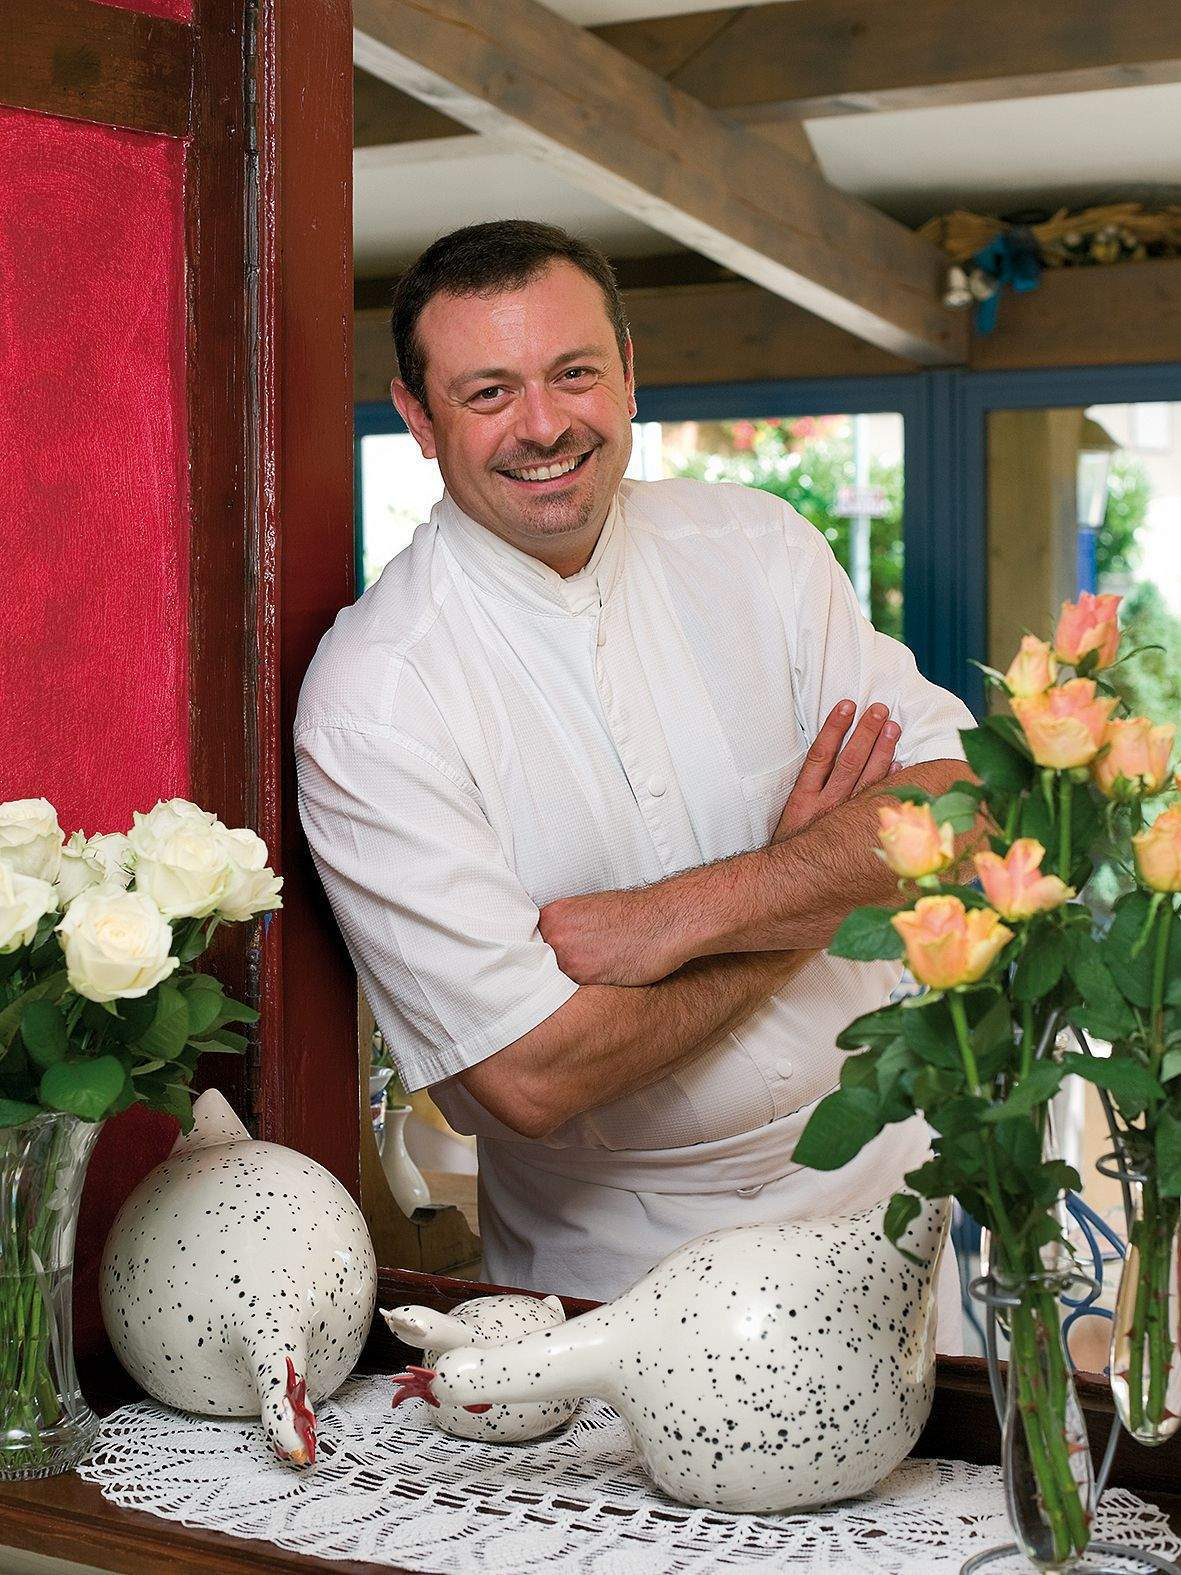 The chef Christophe Favre of the Inn Bressane of Buellas, a restaurant in Buellas in the Ain region with a swimming pool, spa and wellness area near Bourg-en-Bresse